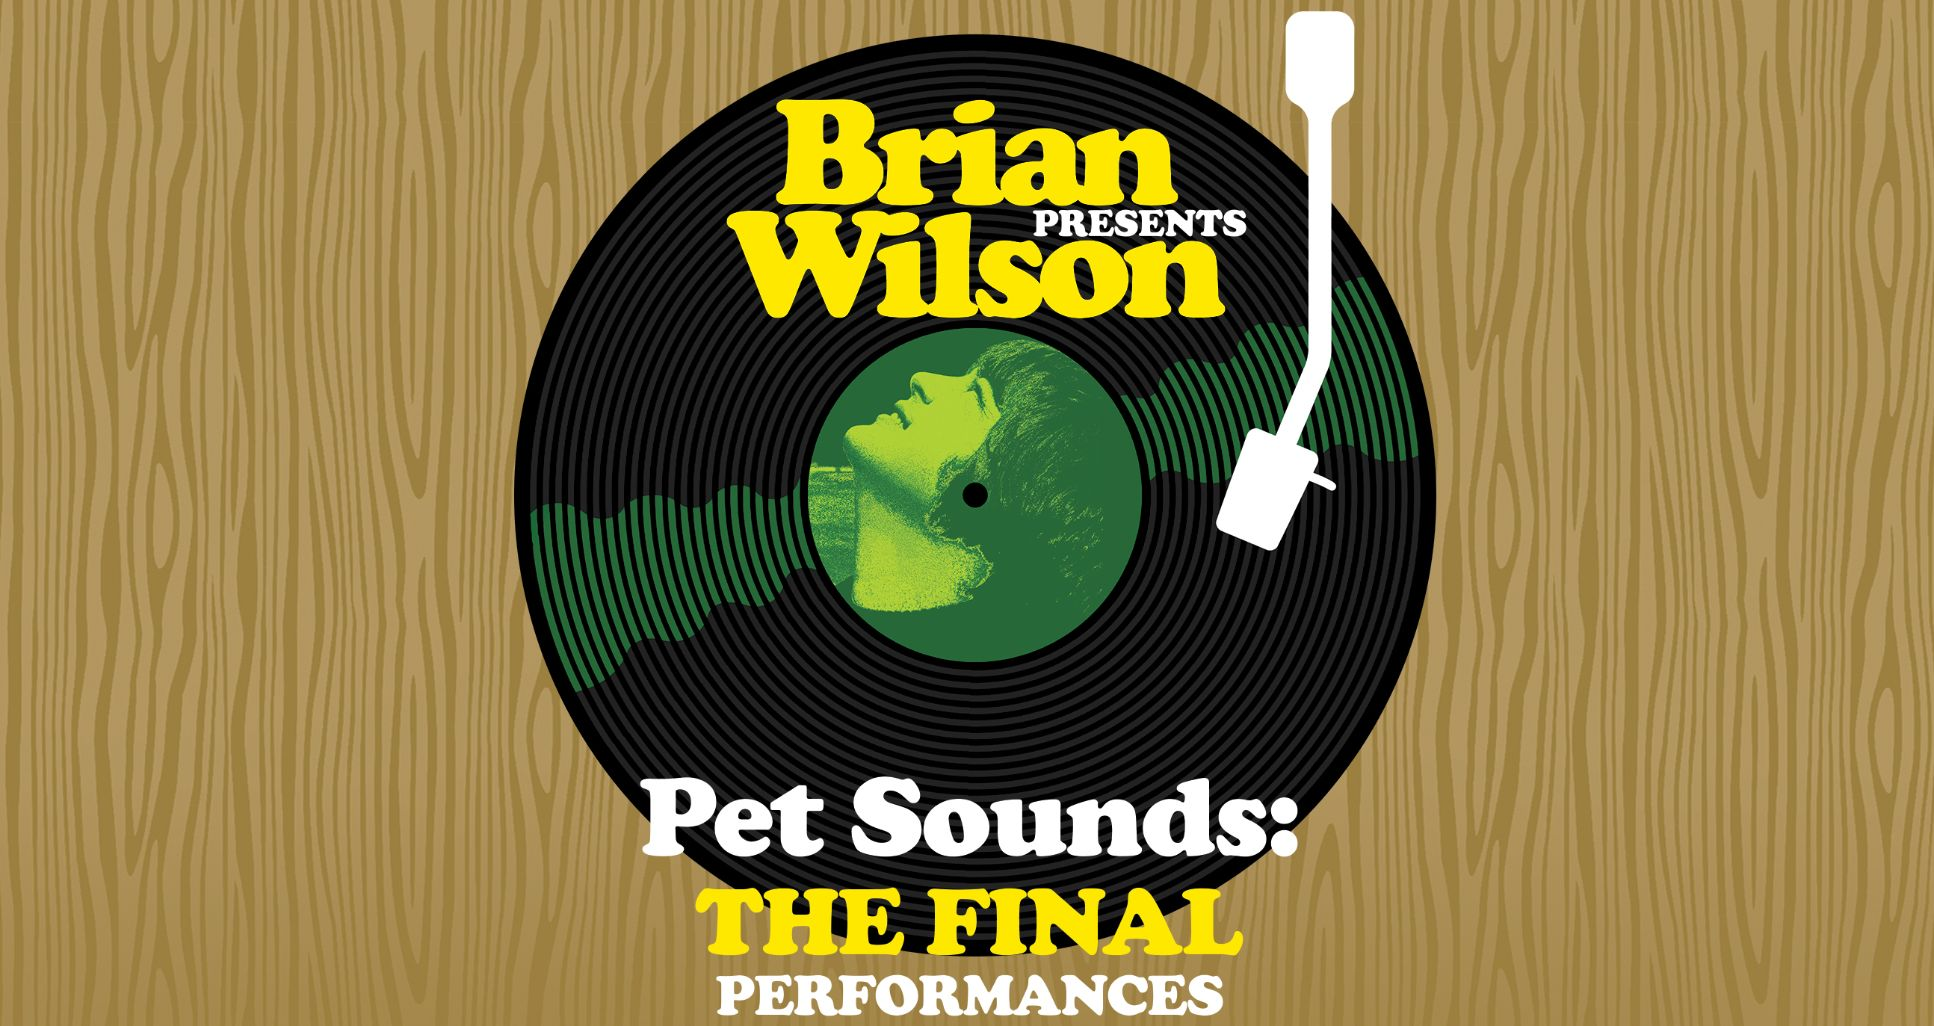 *RESCHEDULED* Brian Wilson presents Pet Sounds: The Final Performances